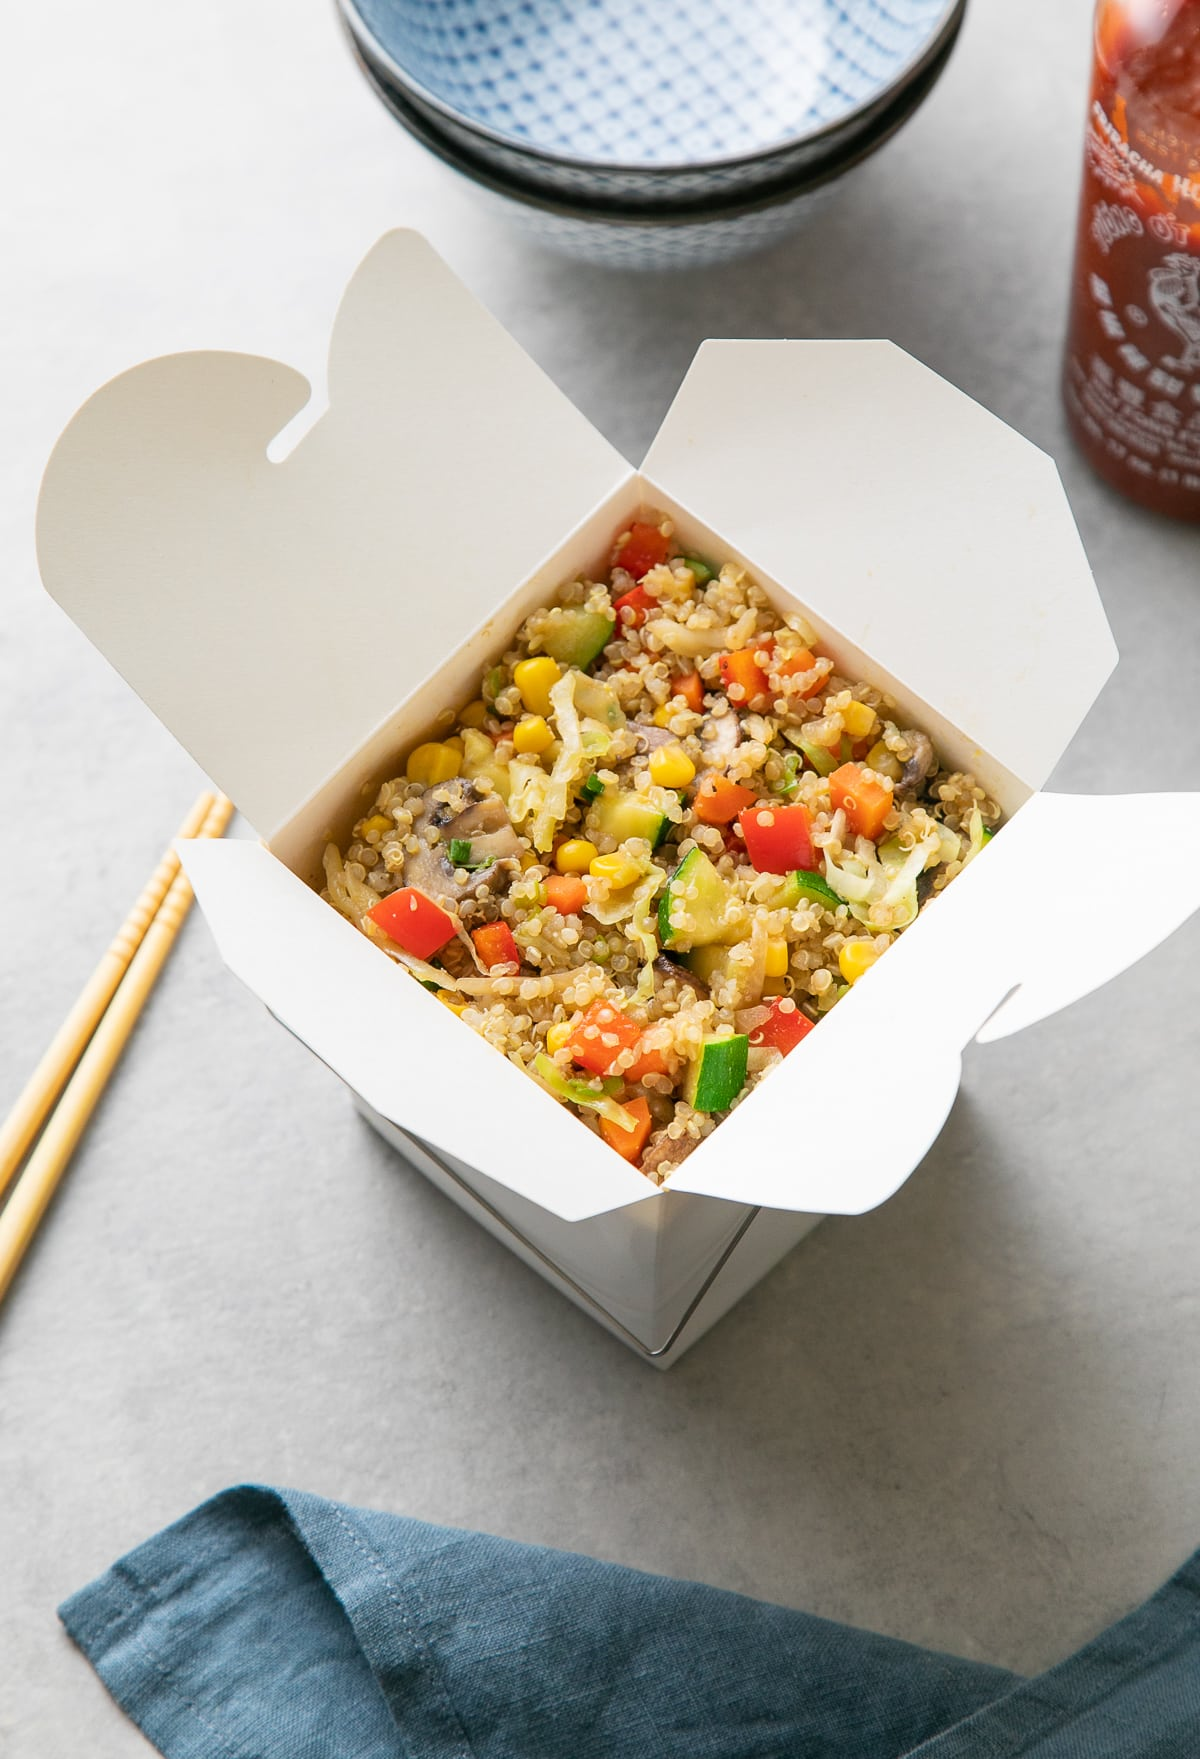 vegetable quinoa fried rice in a chinese take out box with items surrounding.